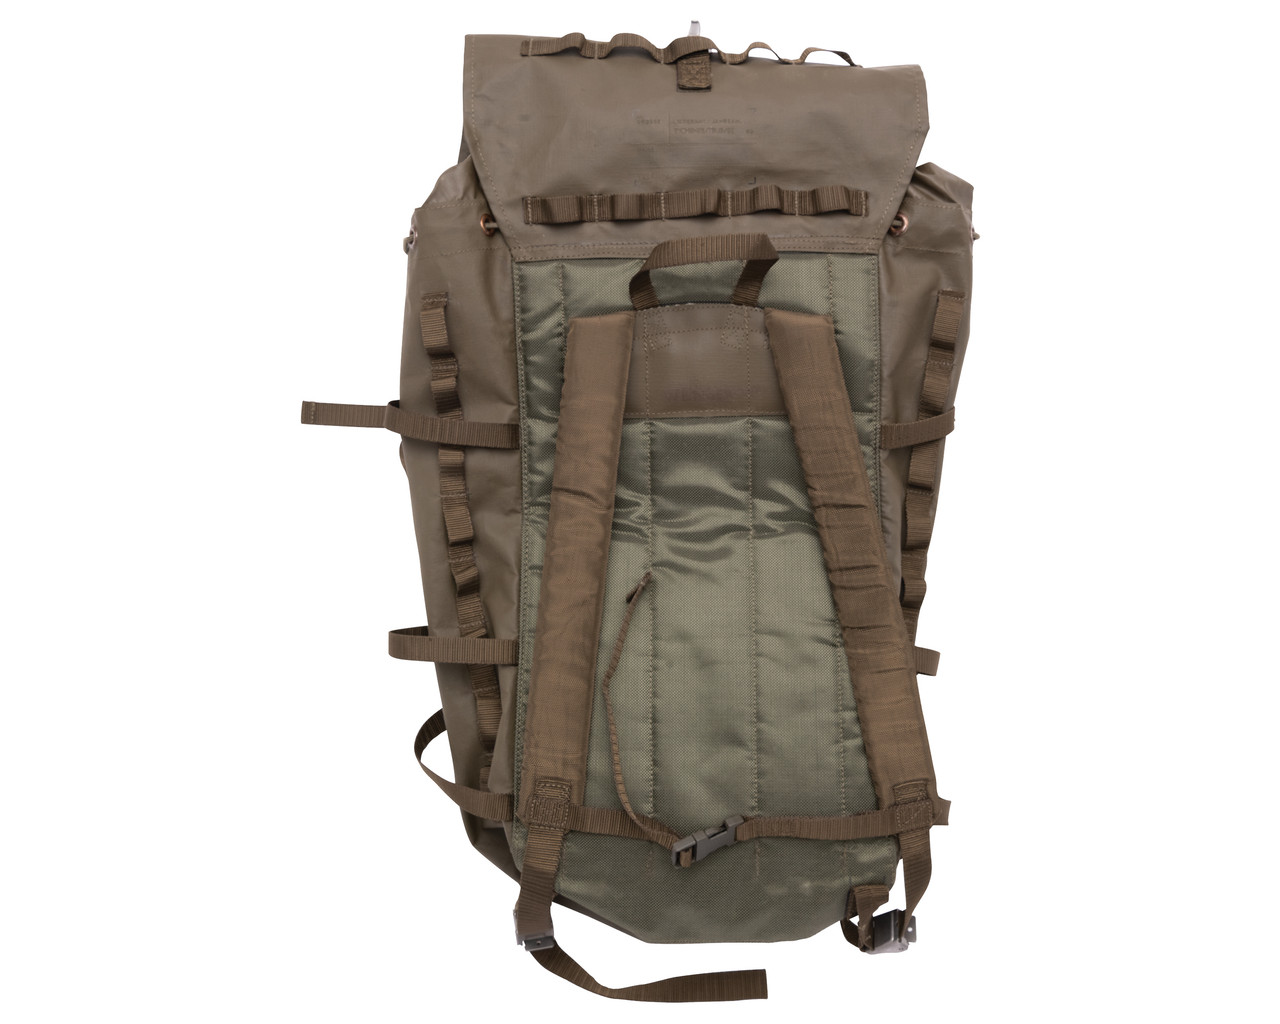 Swiss Army Combat Backpack